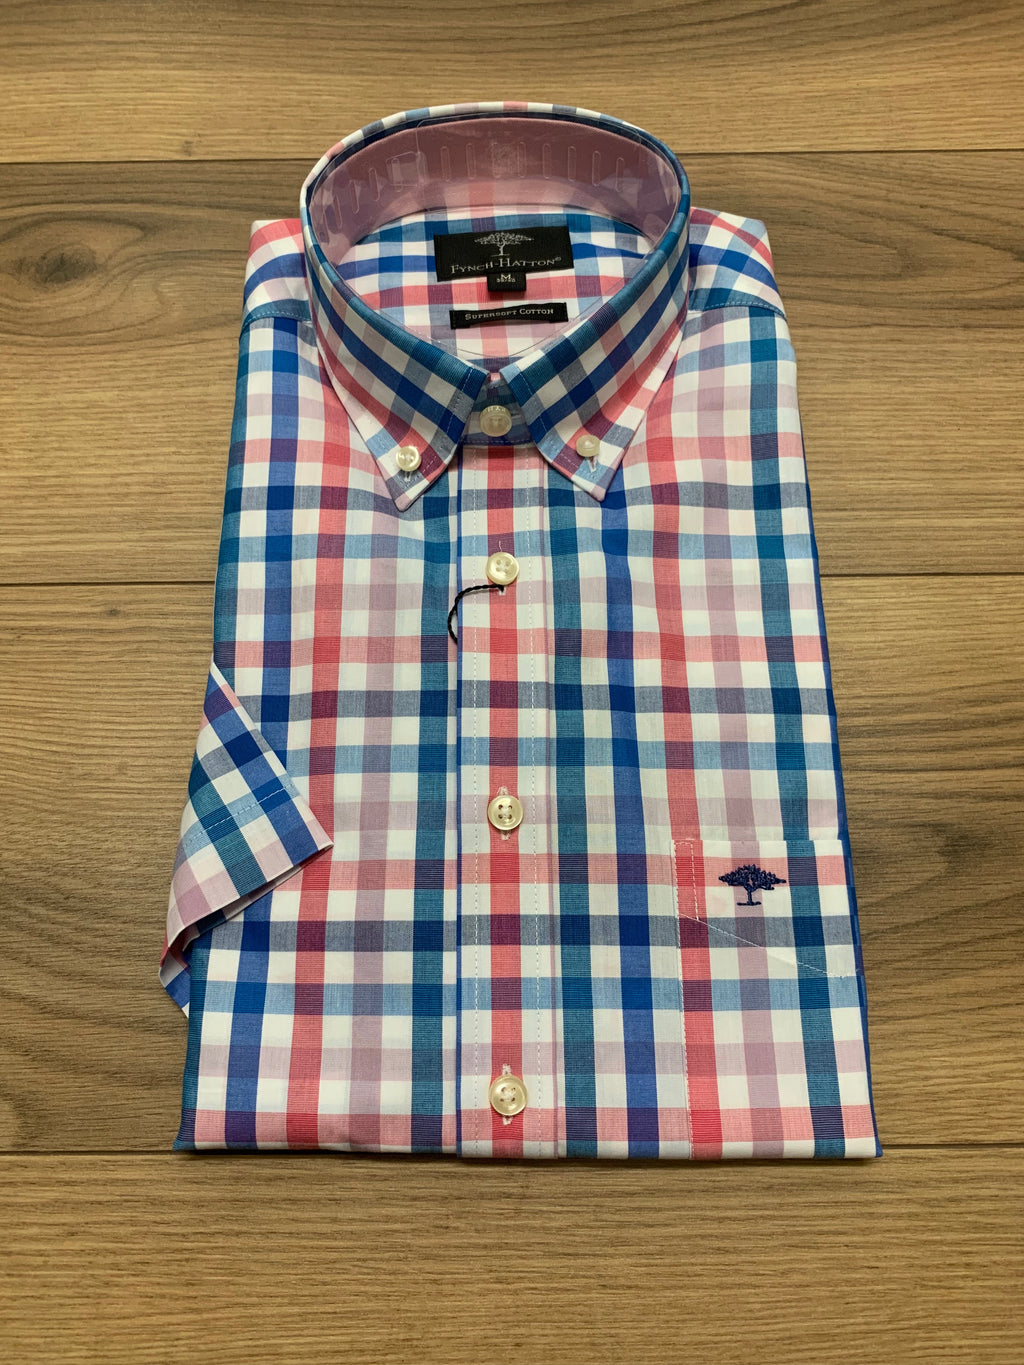 Fynch Hatton 1/2 Sleeve Check Shirt - Magnolia Blue 2 - jjdonnelly